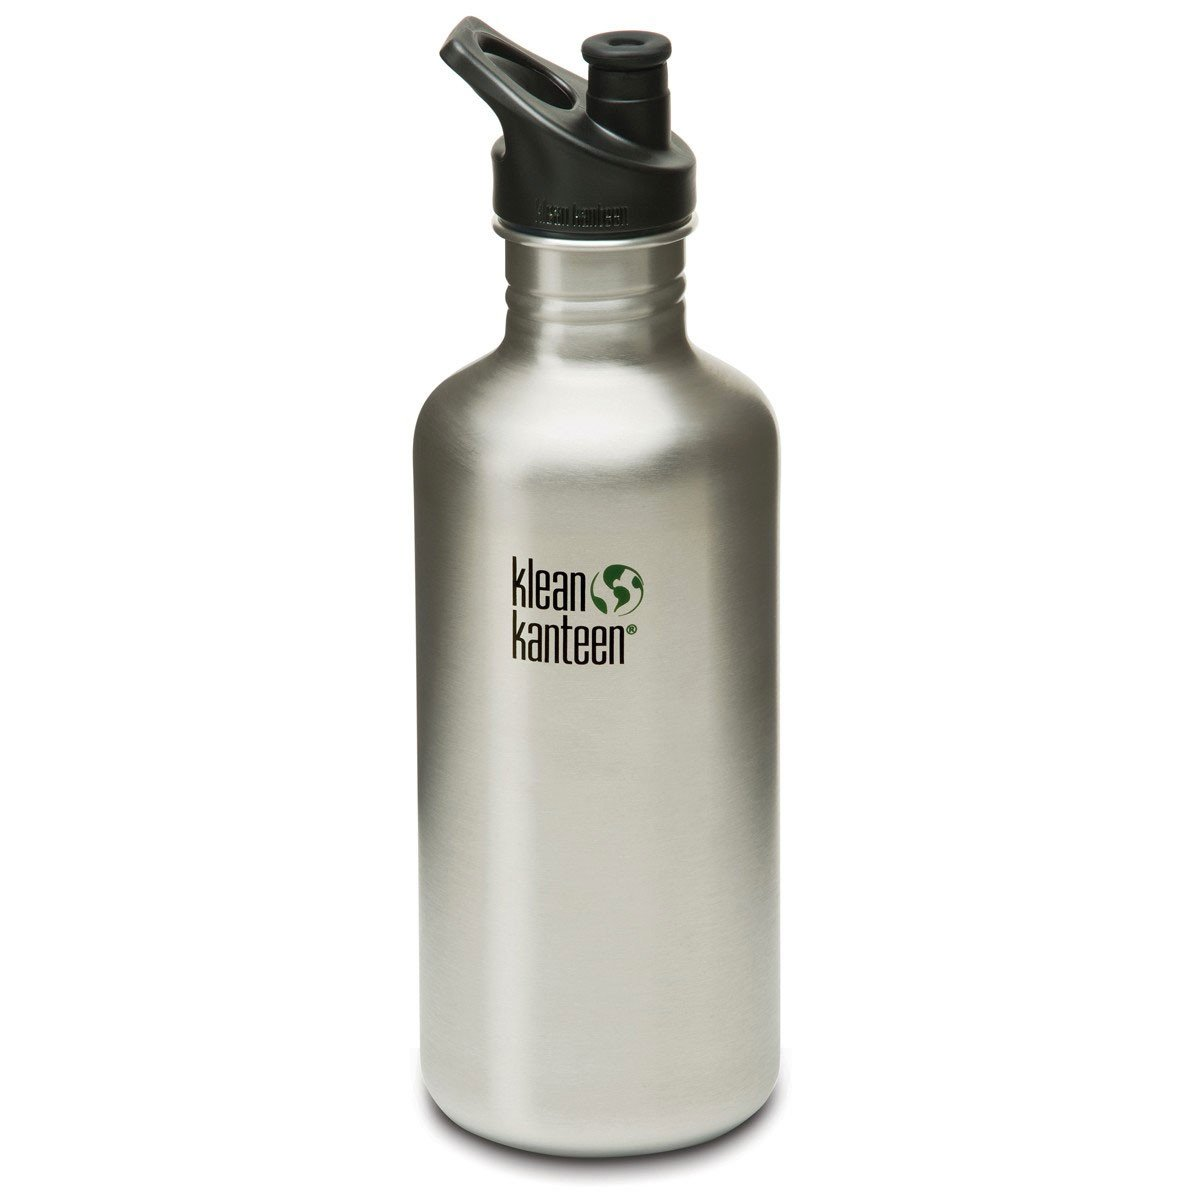 Klean Kanteen Stainless Steel Classic Water Bottle Klean Kanteen Water Bottles 1182ml 40oz / Brushed Stainless at Little Earth Nest Eco Shop